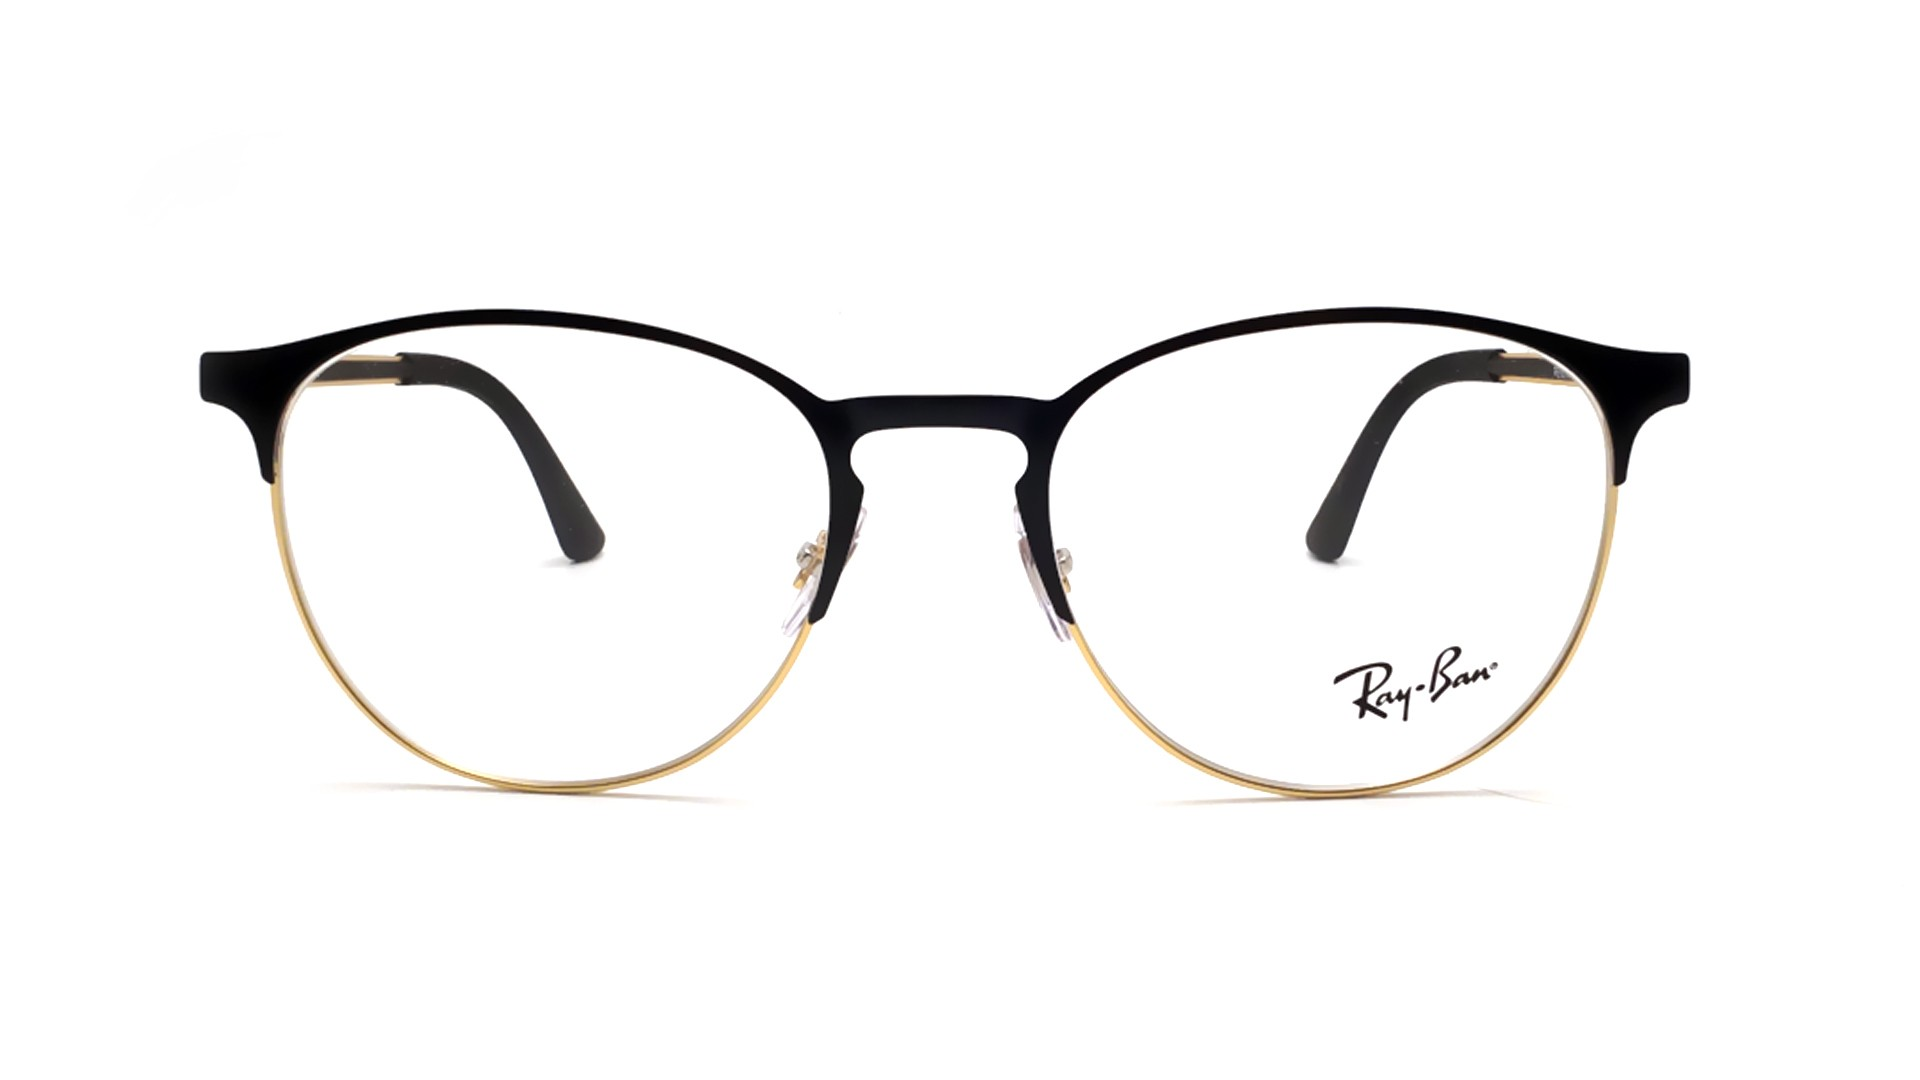 5e5b4c456a1 Eyeglasses Ray-Ban RX6375 RB6375 2890 51-18 Black Medium. 2 reviews